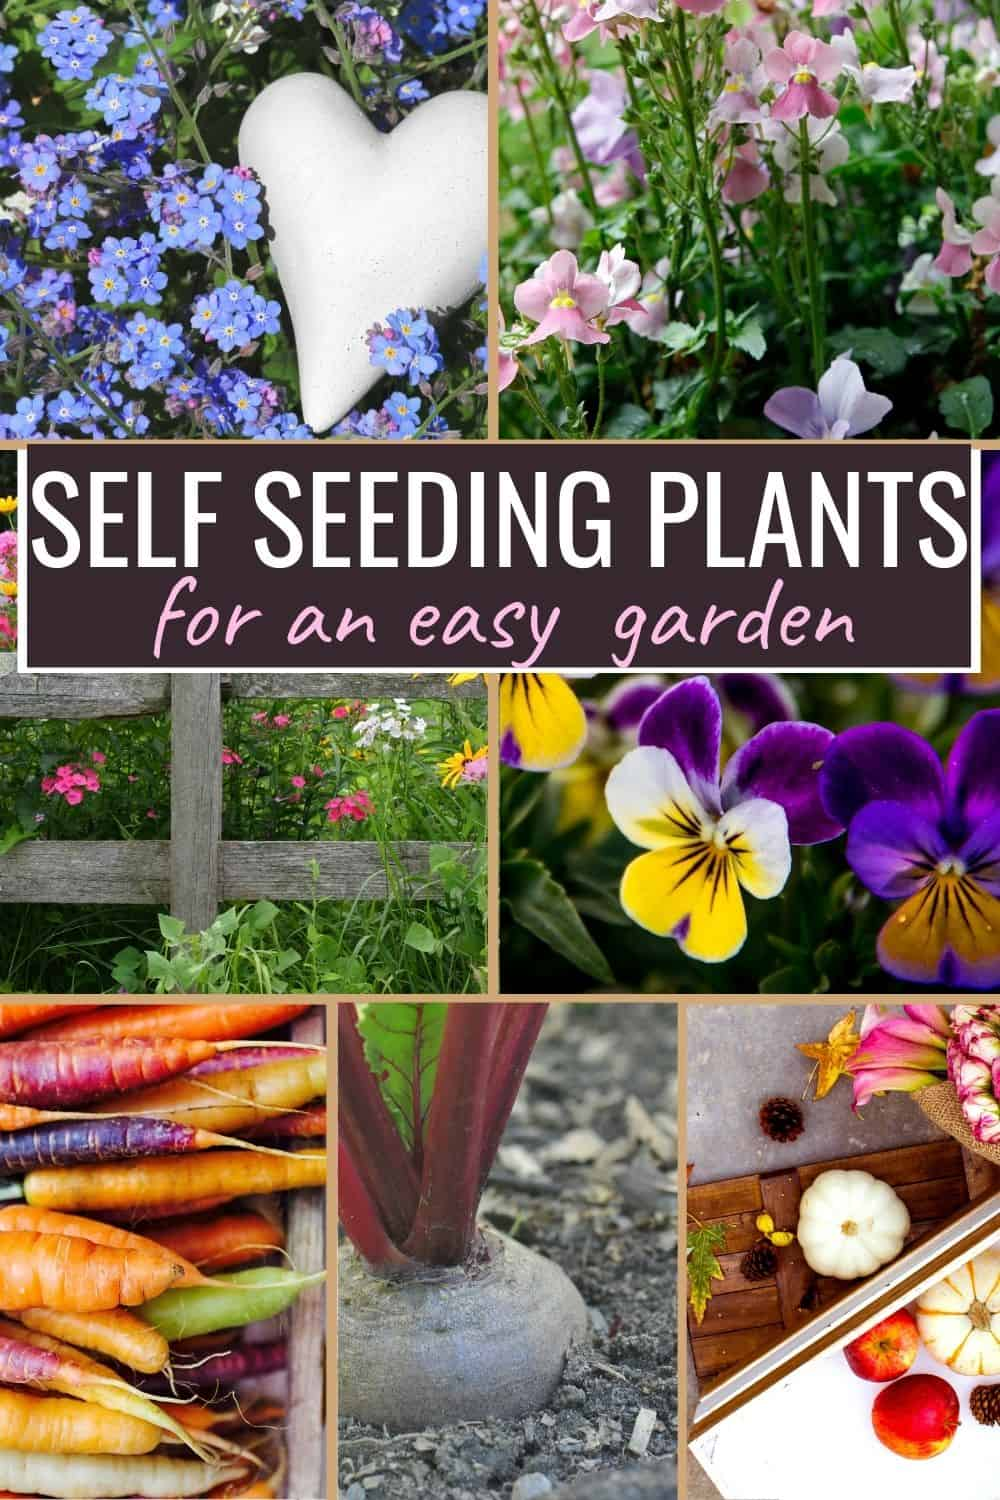 Self seeding plants collage